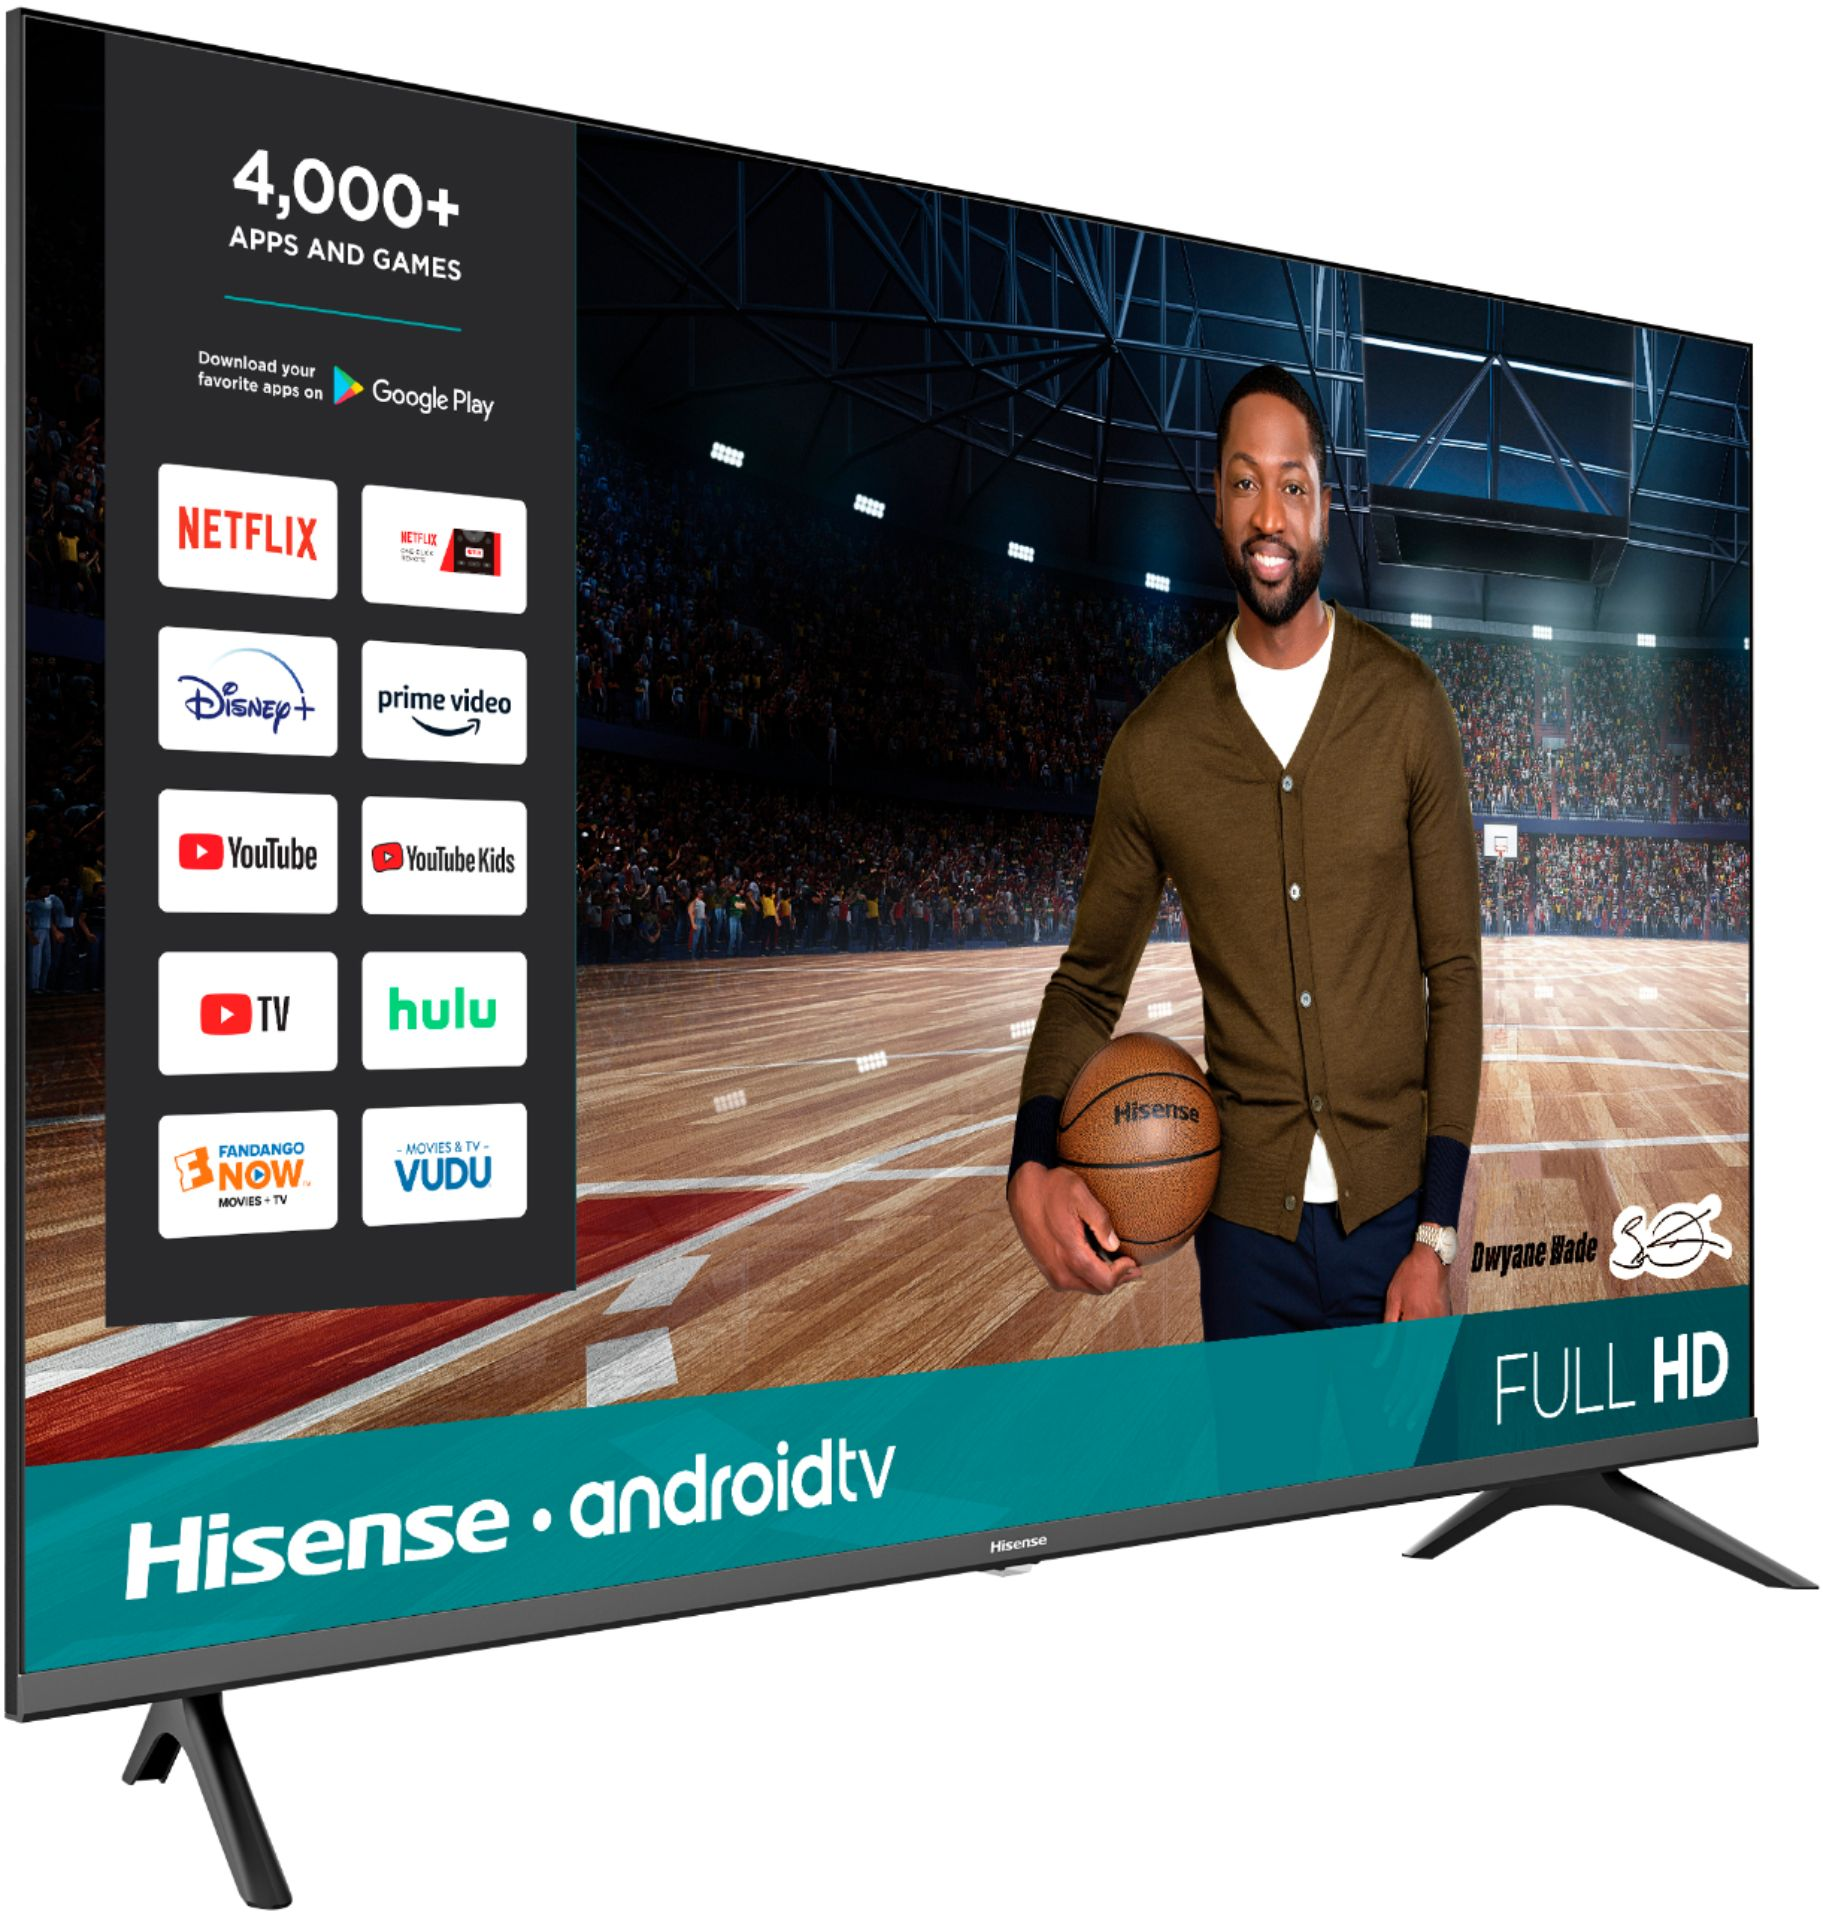 Hisense - 43 Inch Class H55 Series LED Full HD Smart Android TV